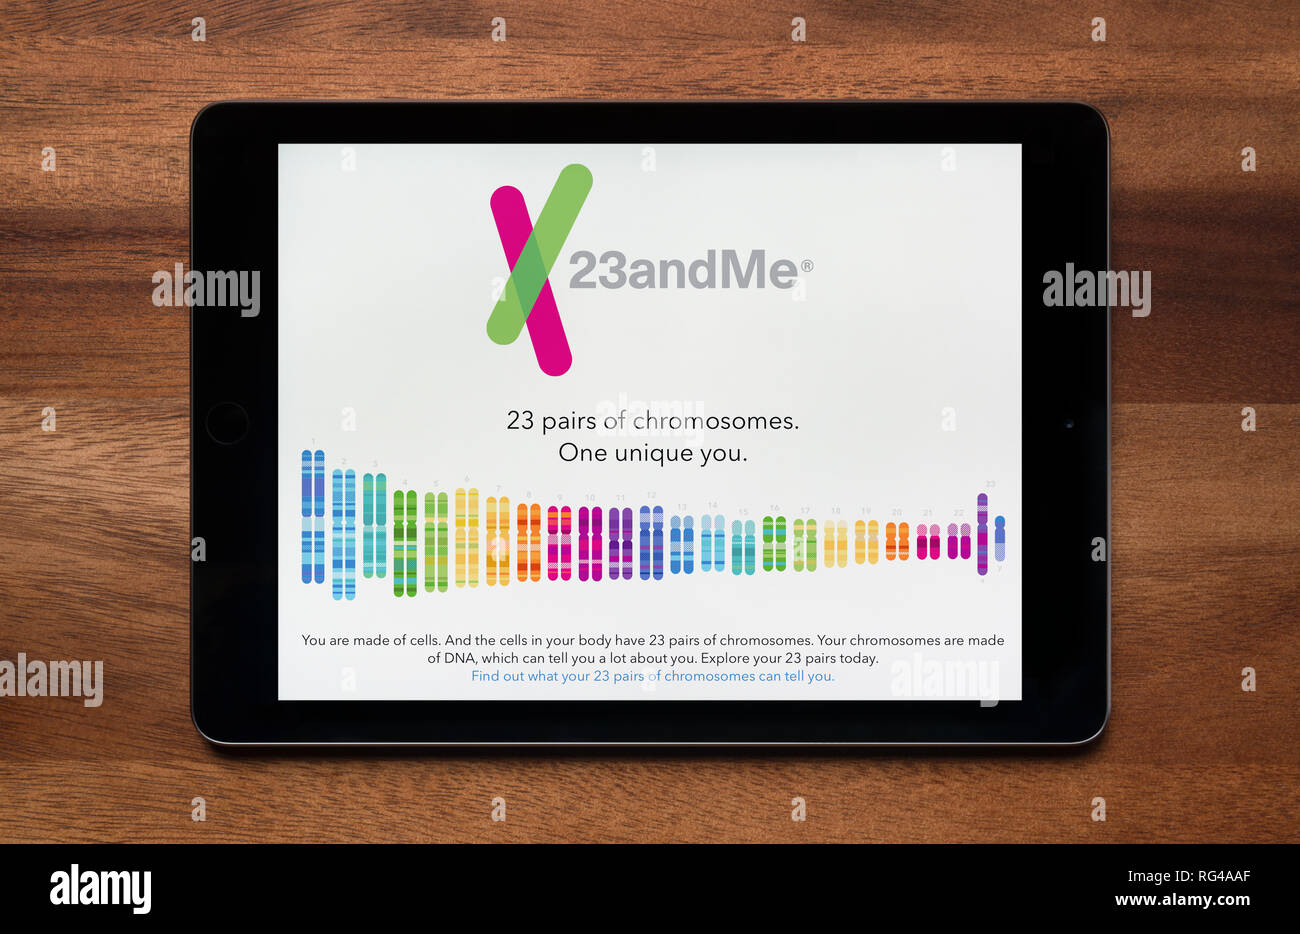 The website of 23andMe is seen on an iPad tablet, which is resting on a wooden table (Editorial use only). - Stock Image